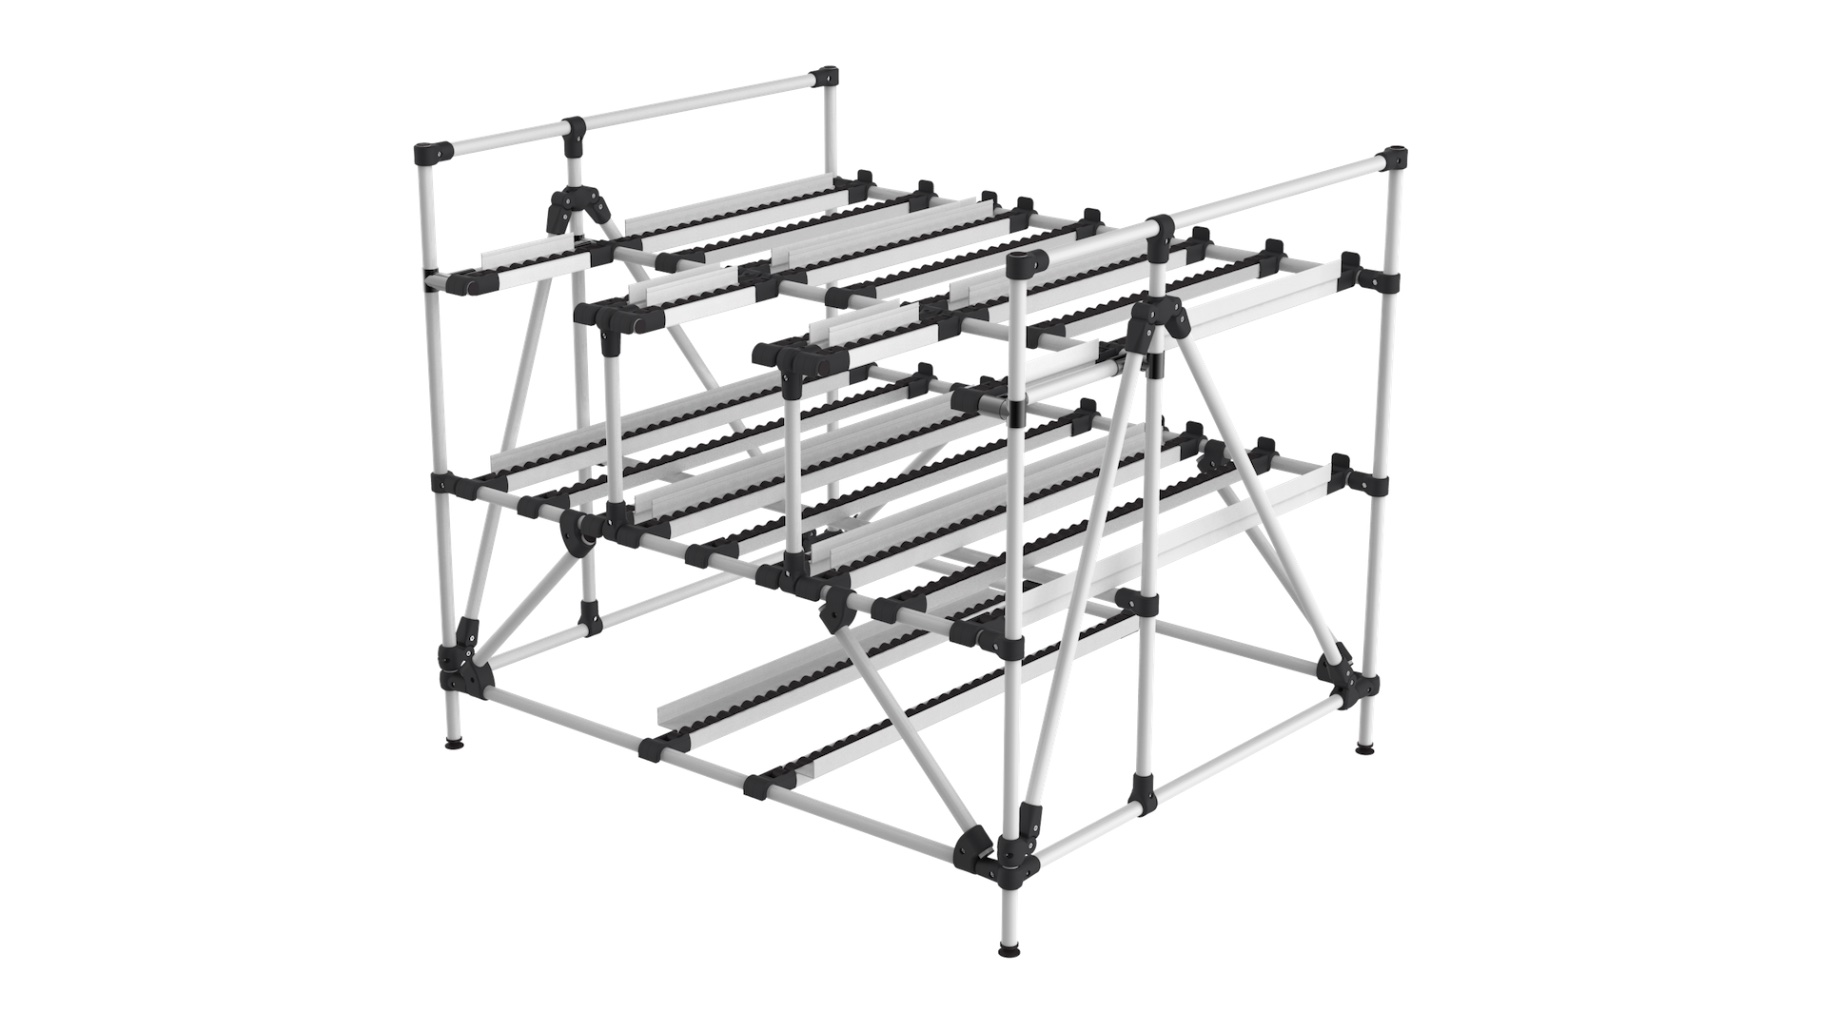 Retail / E-Commerce - Order preparation rack, due to its particular architecture, this rack allows easy selection of references for optimized picking.